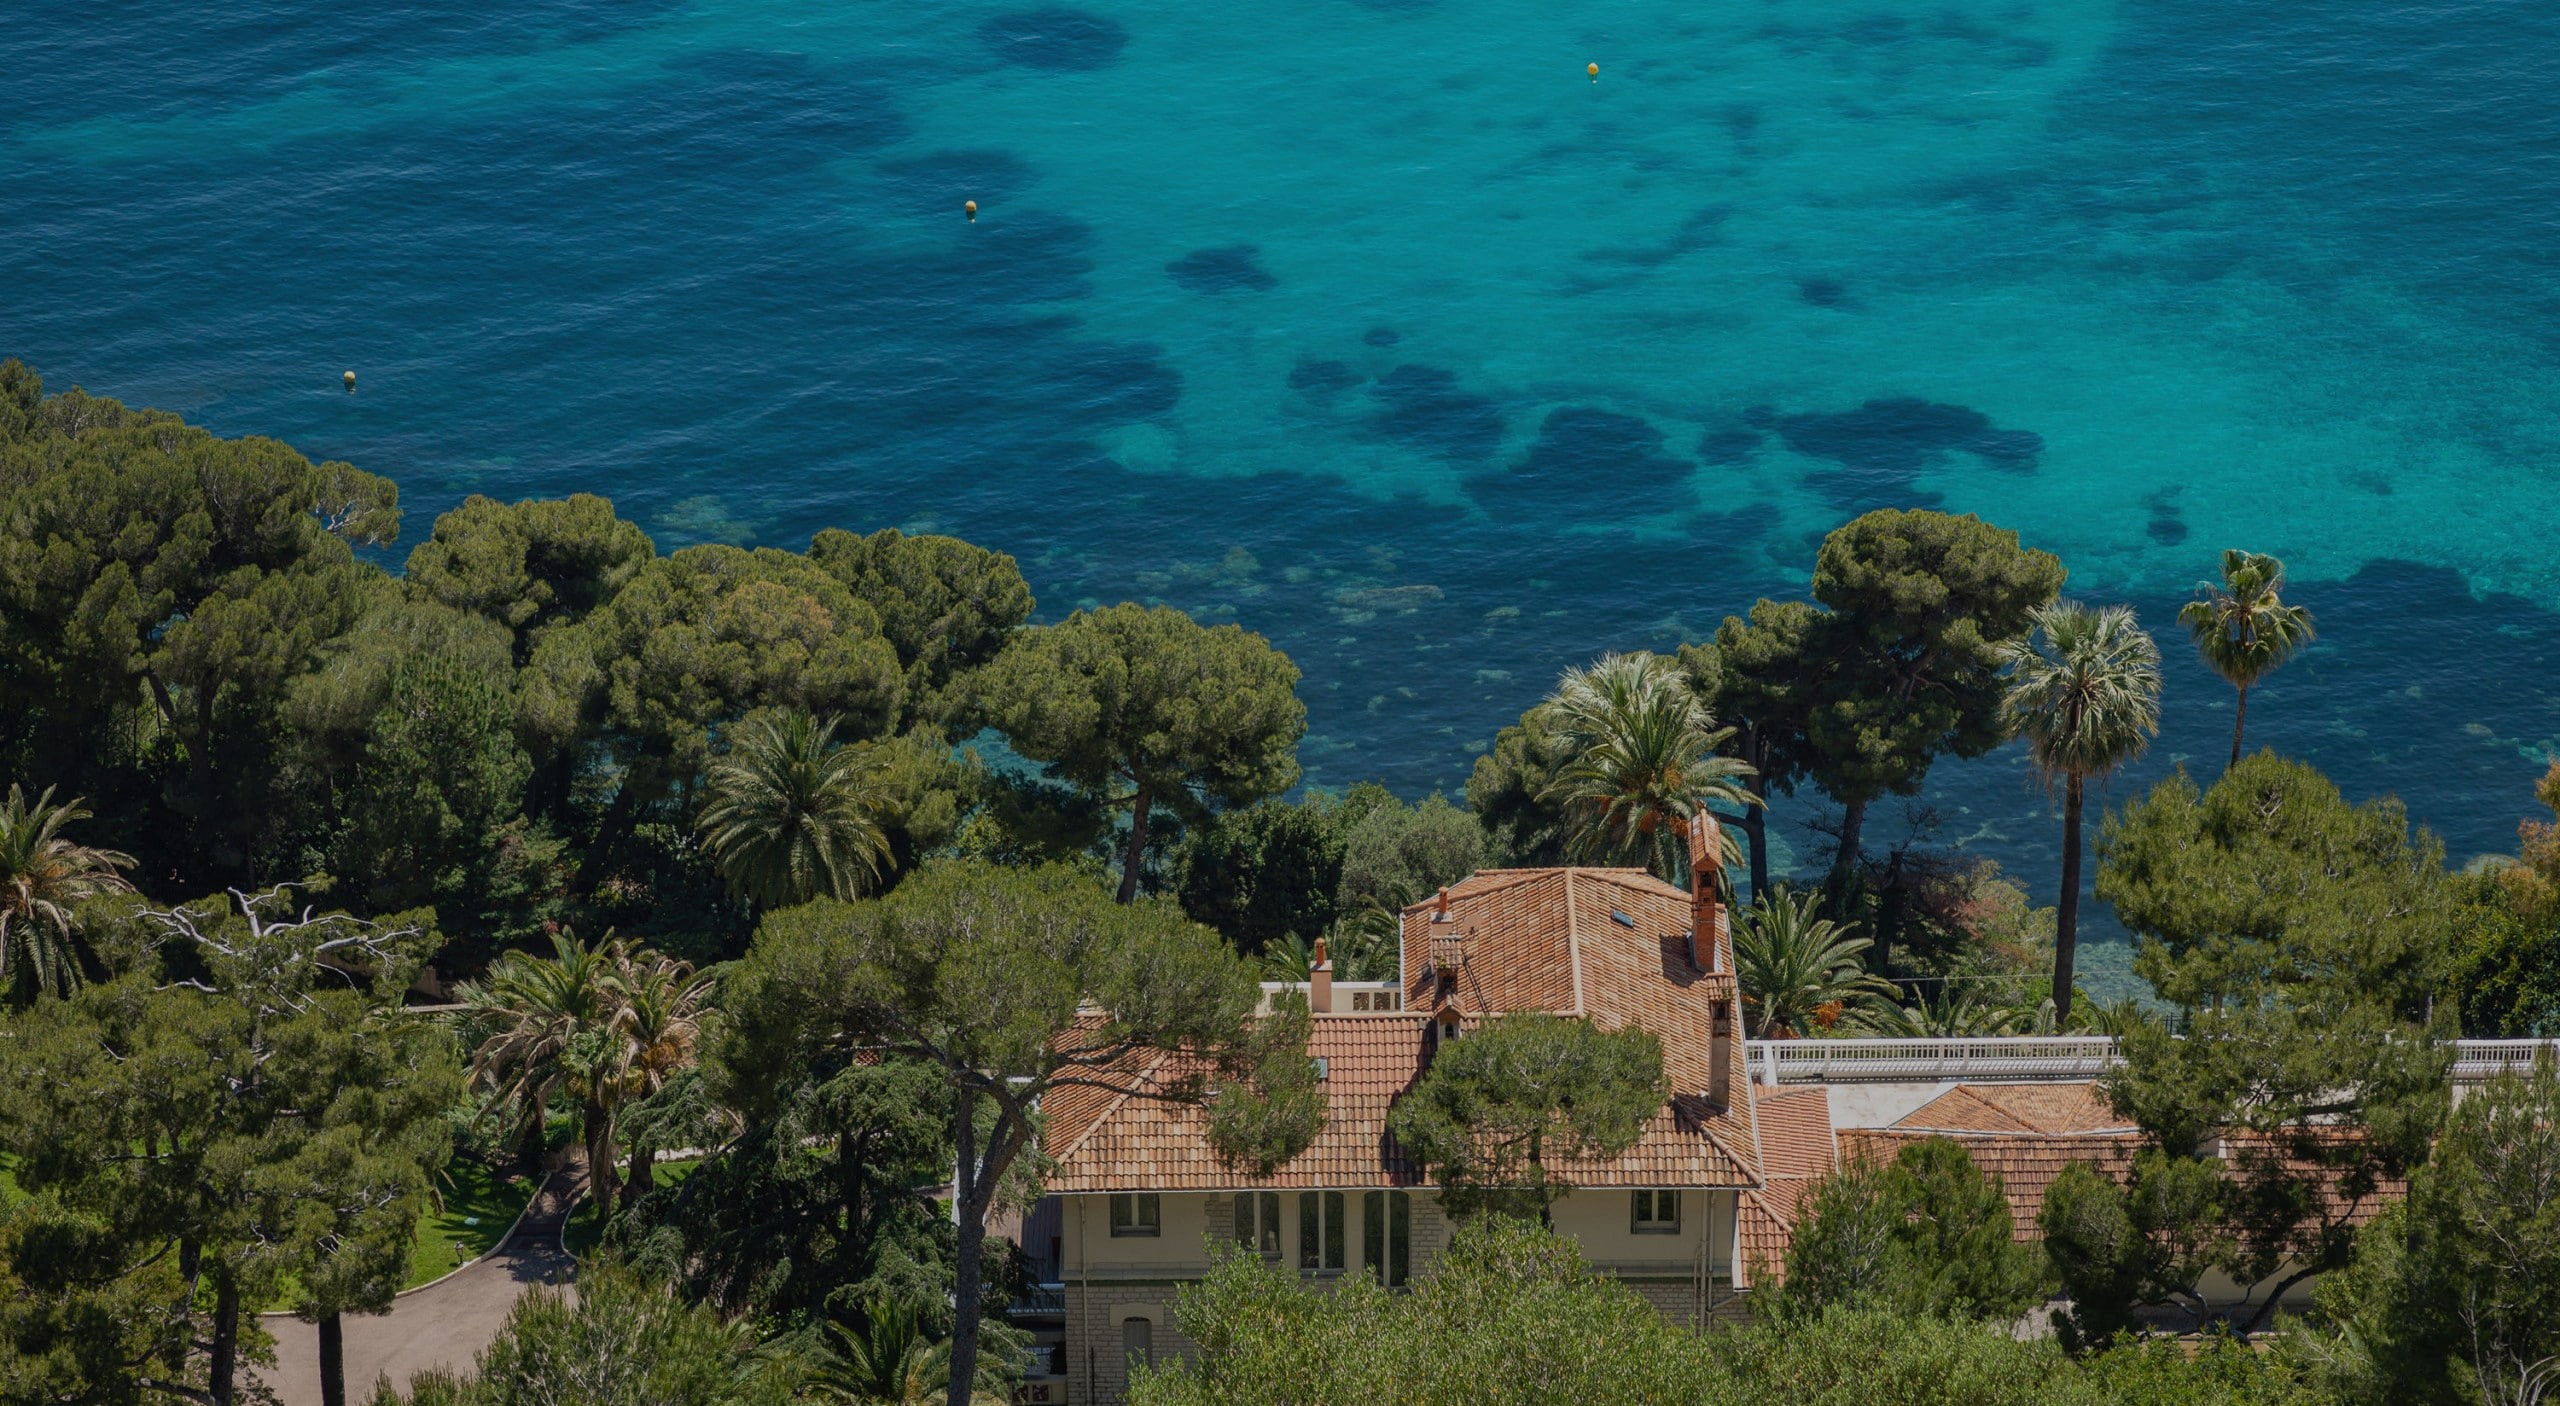 Turquoise sea and pine trees on the French Riviera, South of France